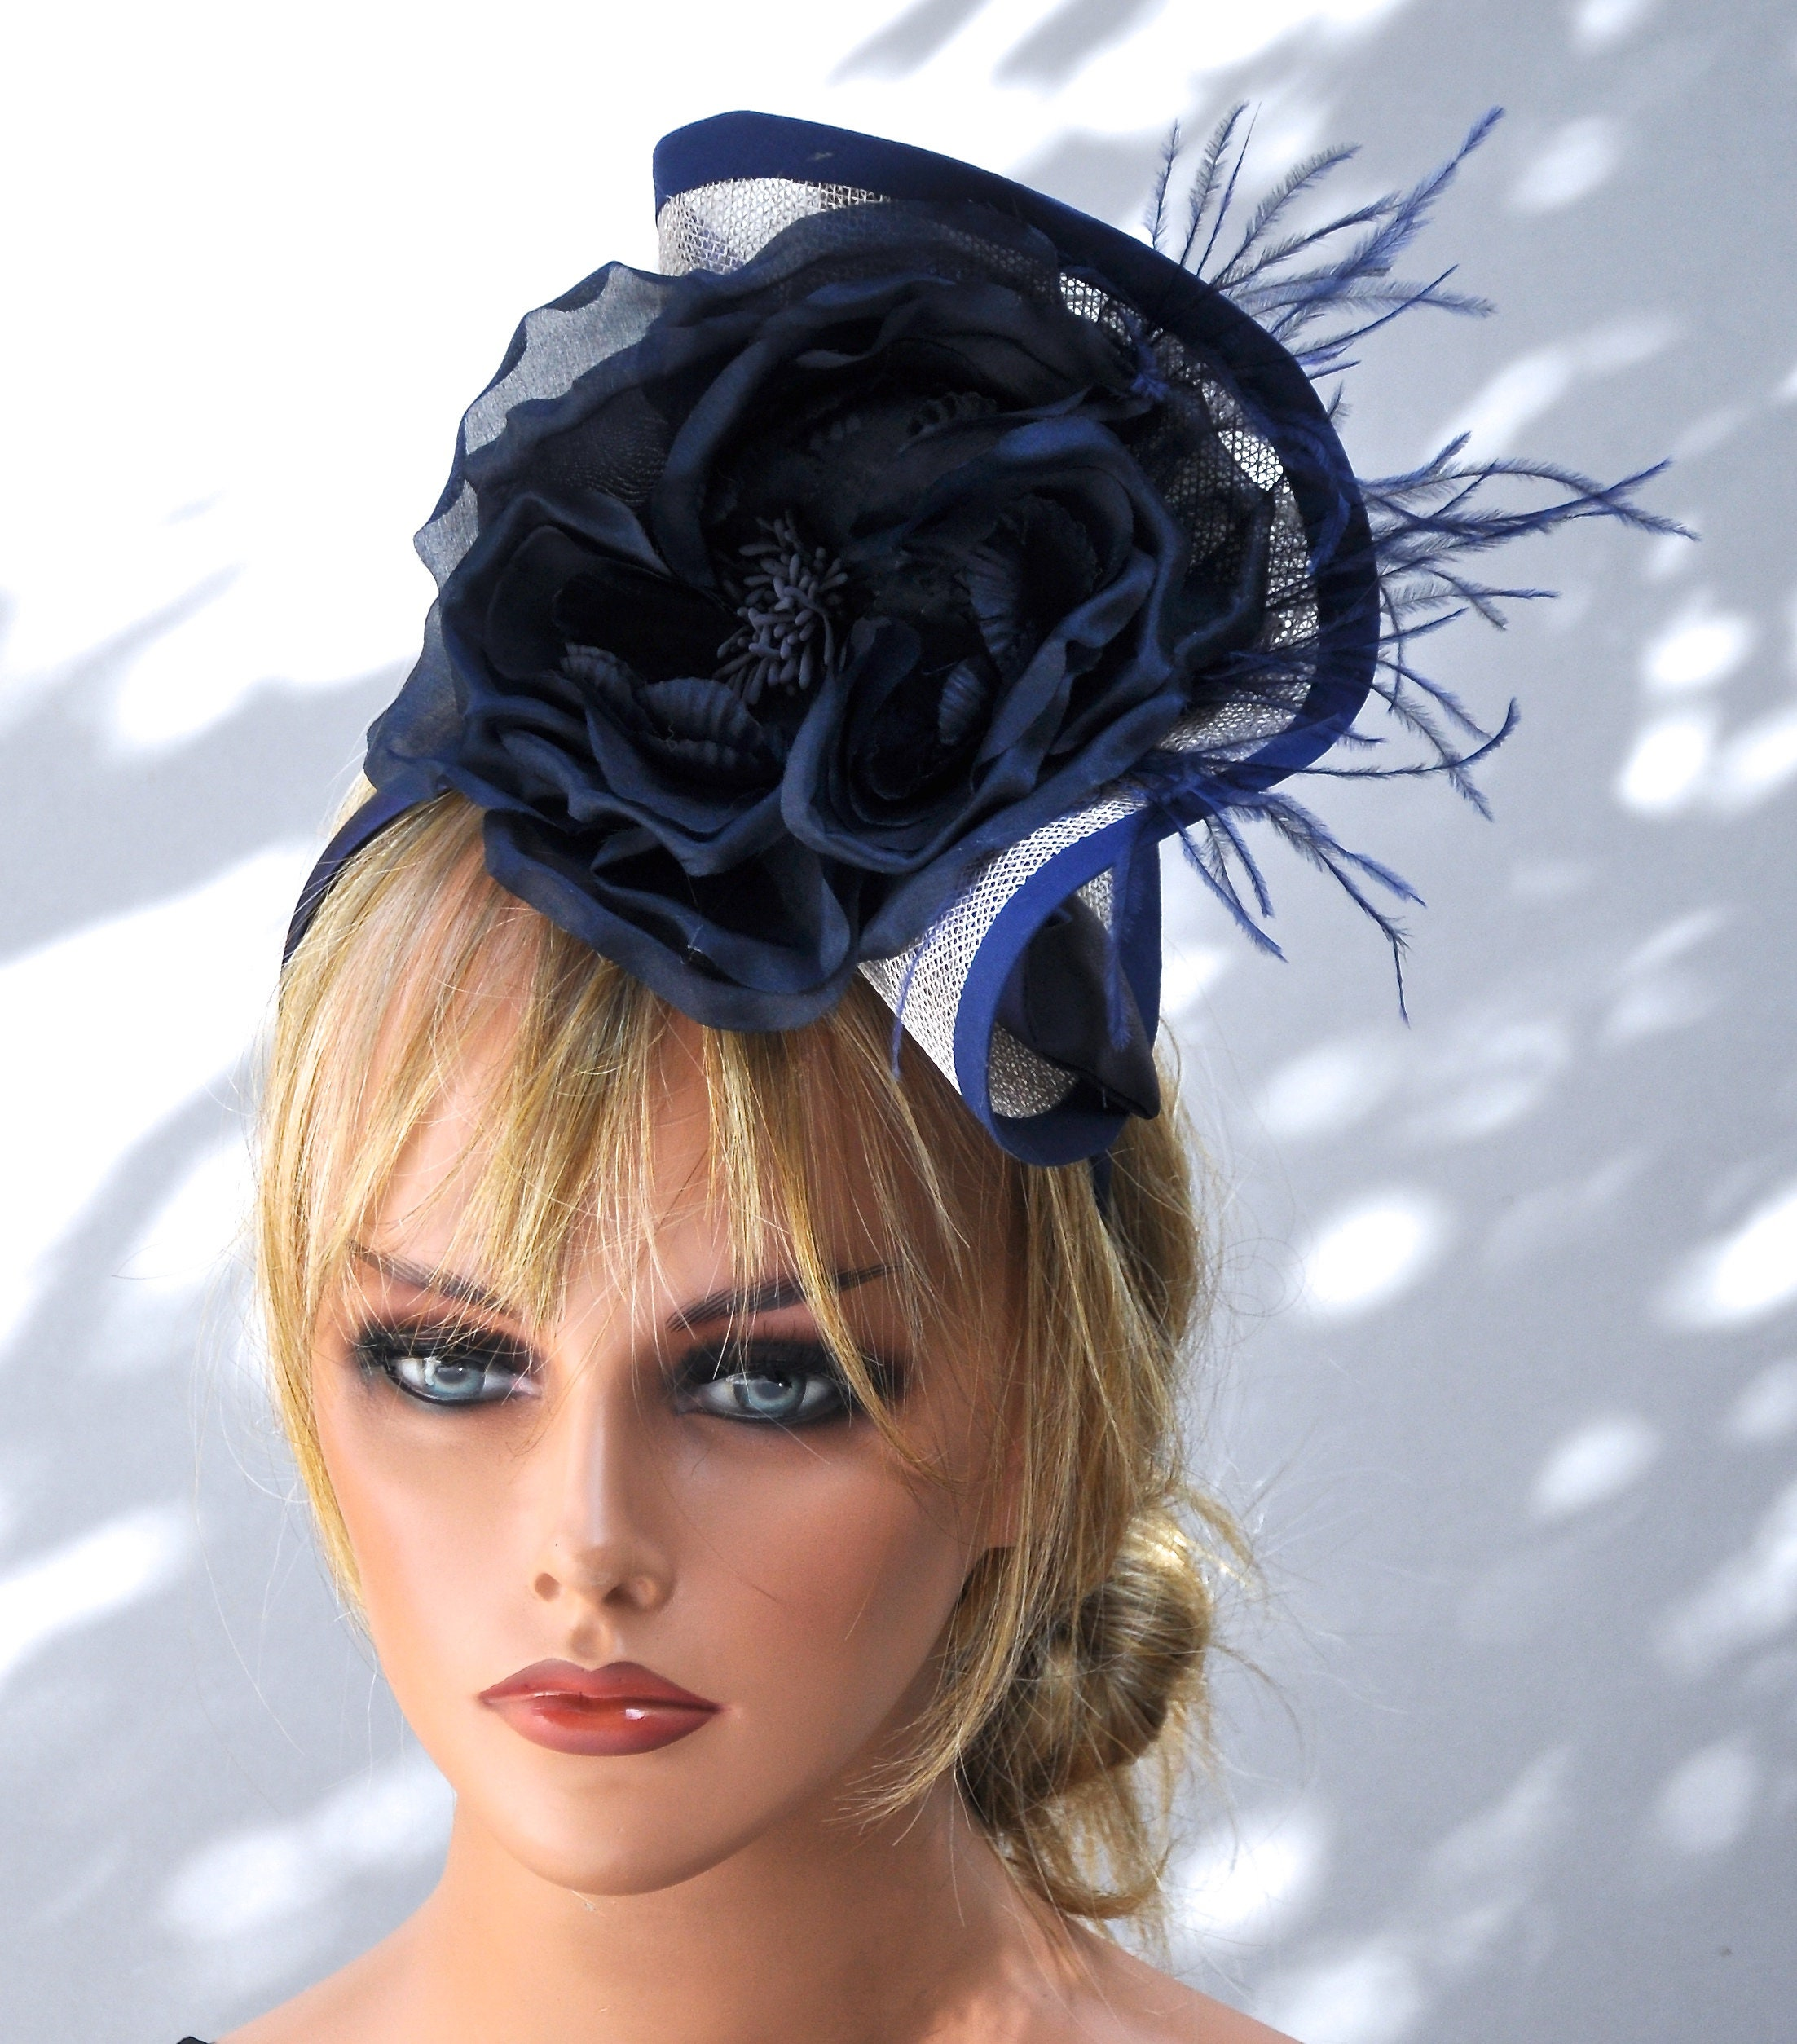 Blue Fascinator on Aliceband Weddings Mother Of The Bride Ladies Day Races Party